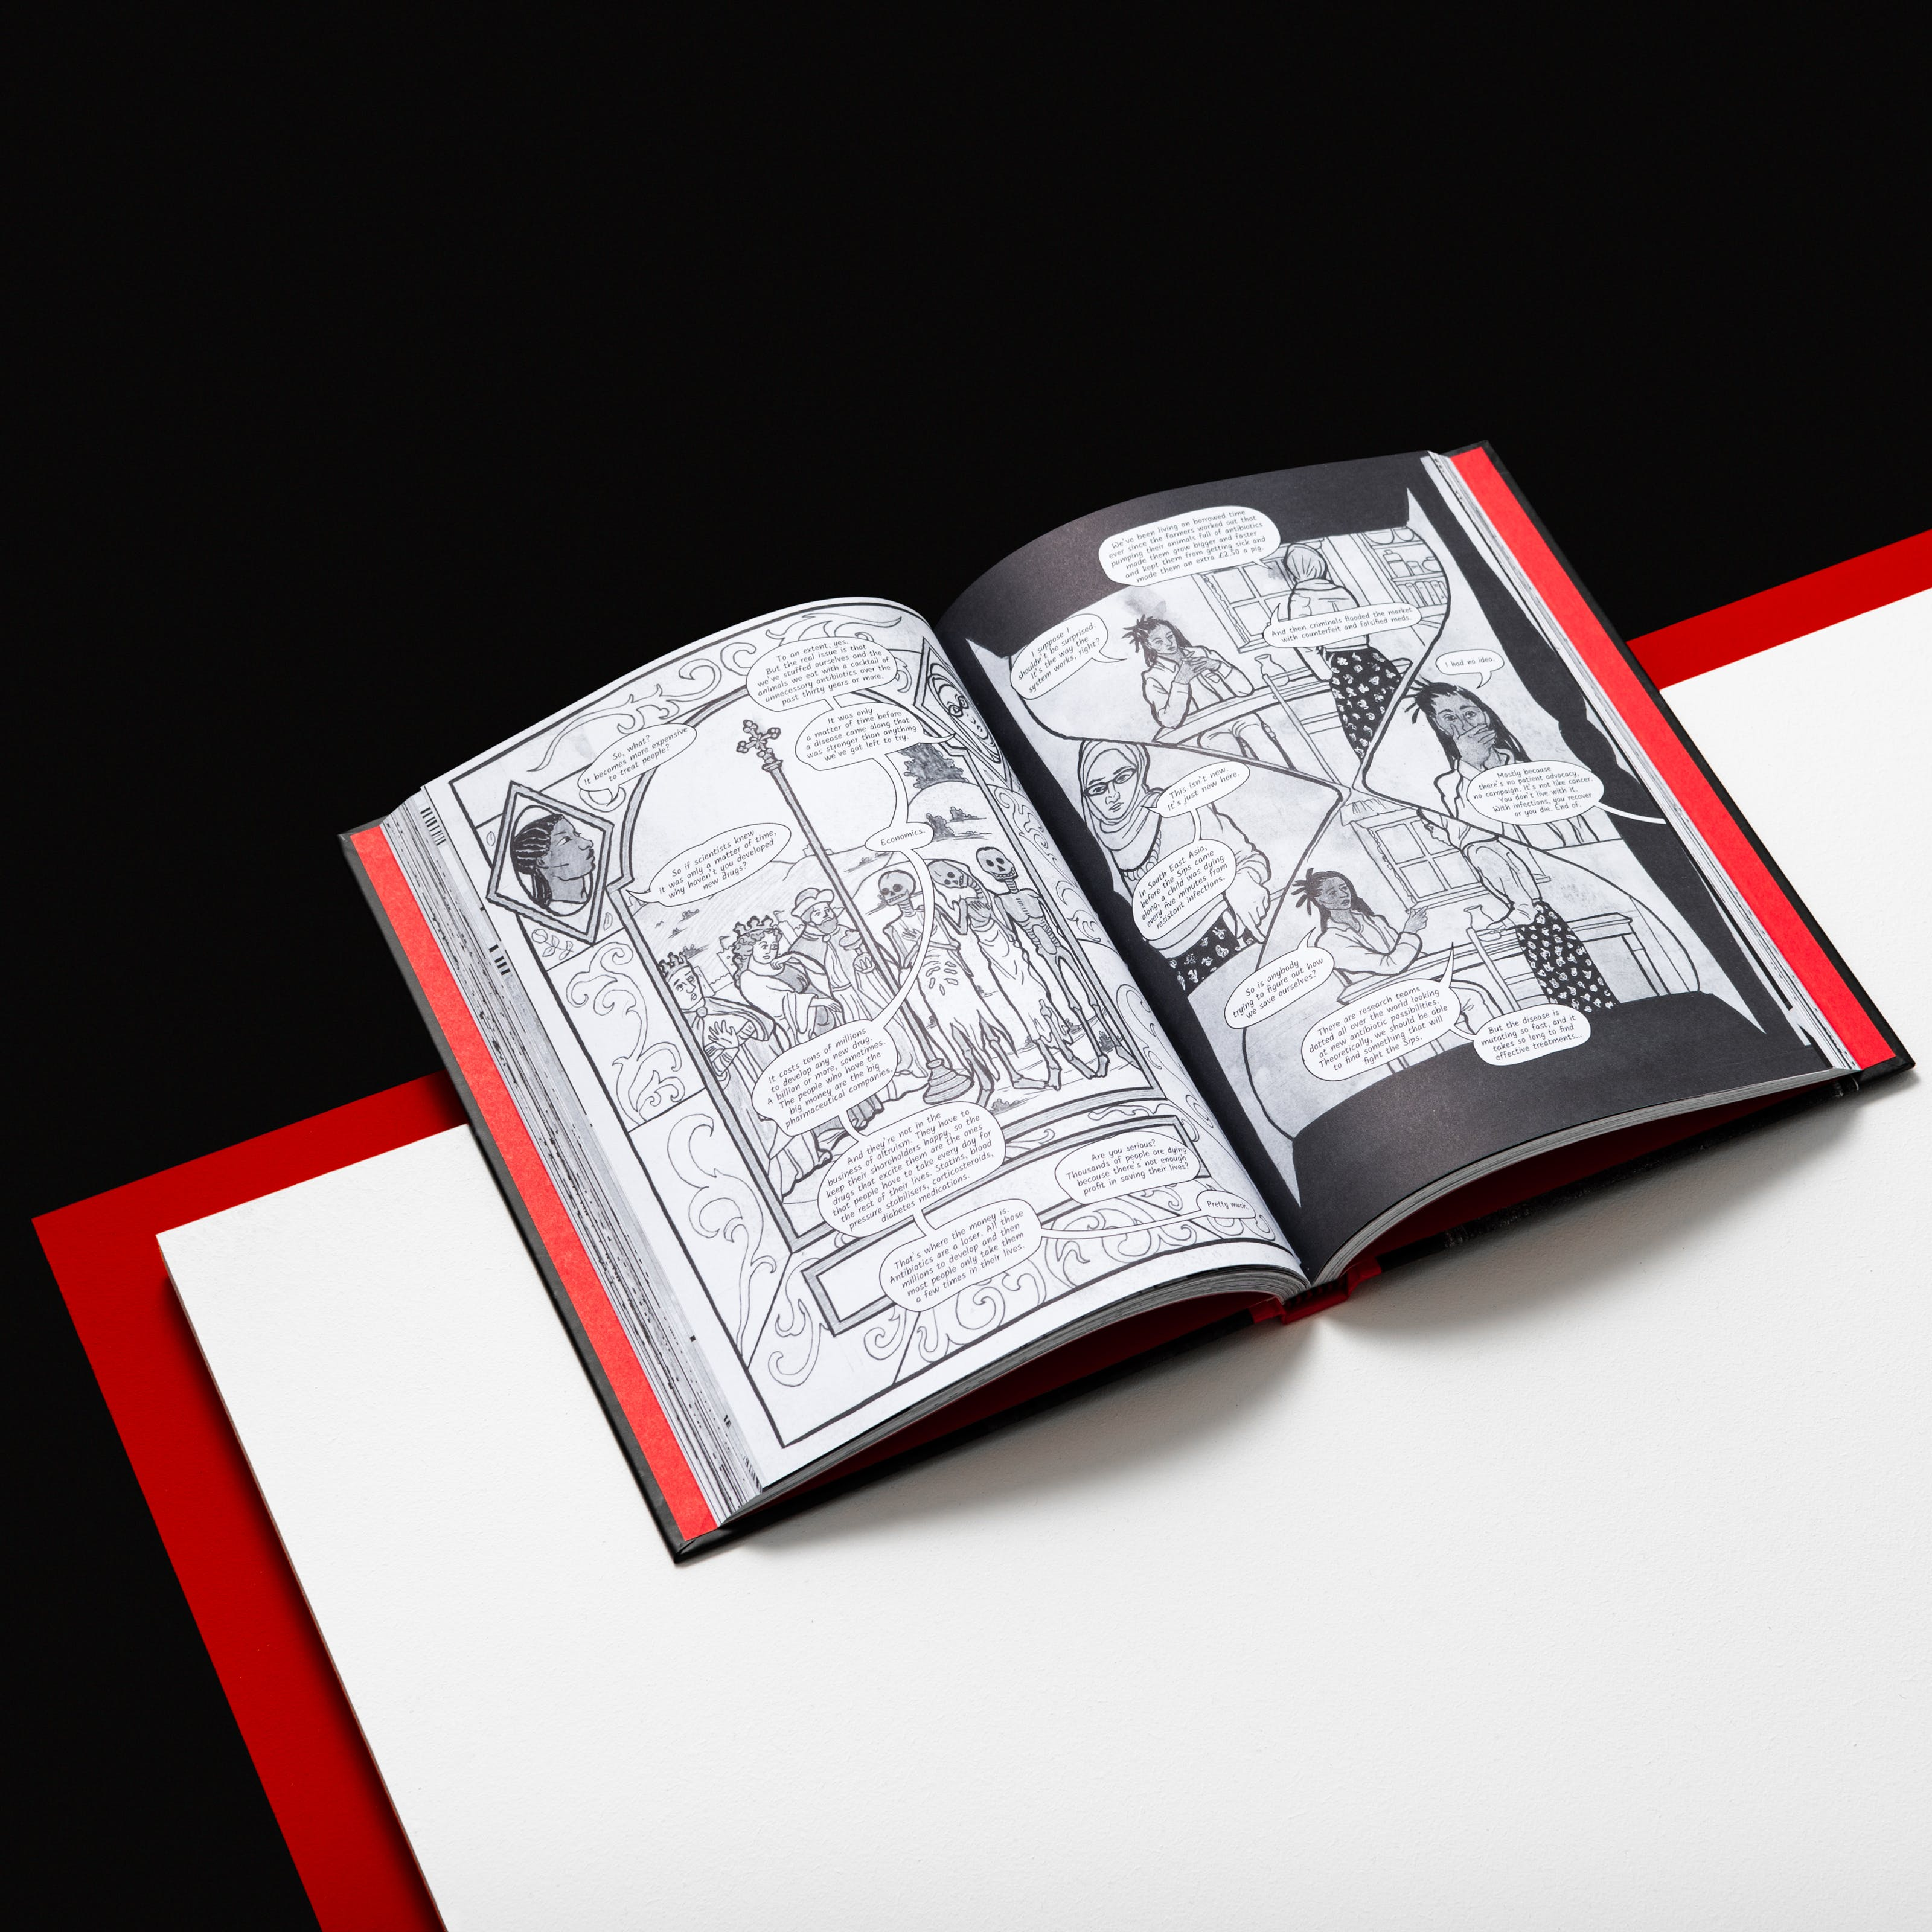 Photograph of an open hardback book resting on a white surface. The top part of the book is overhanging the white surface. Just below the white surface is another red surface creating an edge around the white top. This red compliments the red colour of the inside of the hardback cover. The two open pages of the book show black and white graphic novel illustrations. Behind the book and the surfaces is a black background.